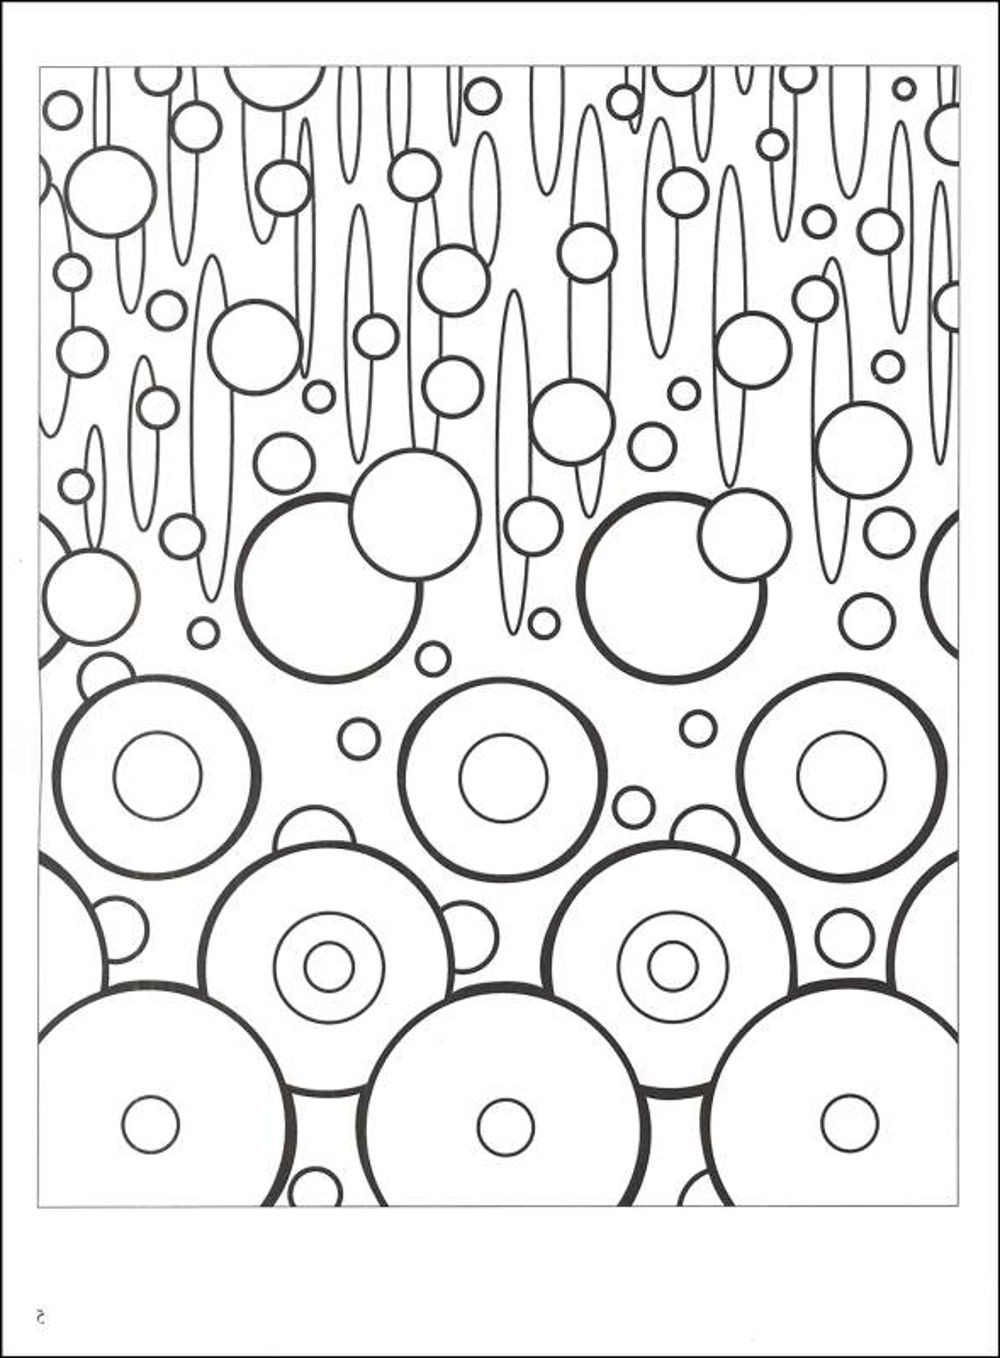 Free Online Coloring Pages for Adults 1000—1358 to Print Of Stress Relief Coloring Pages Animals Funny Coloring Pages Printable